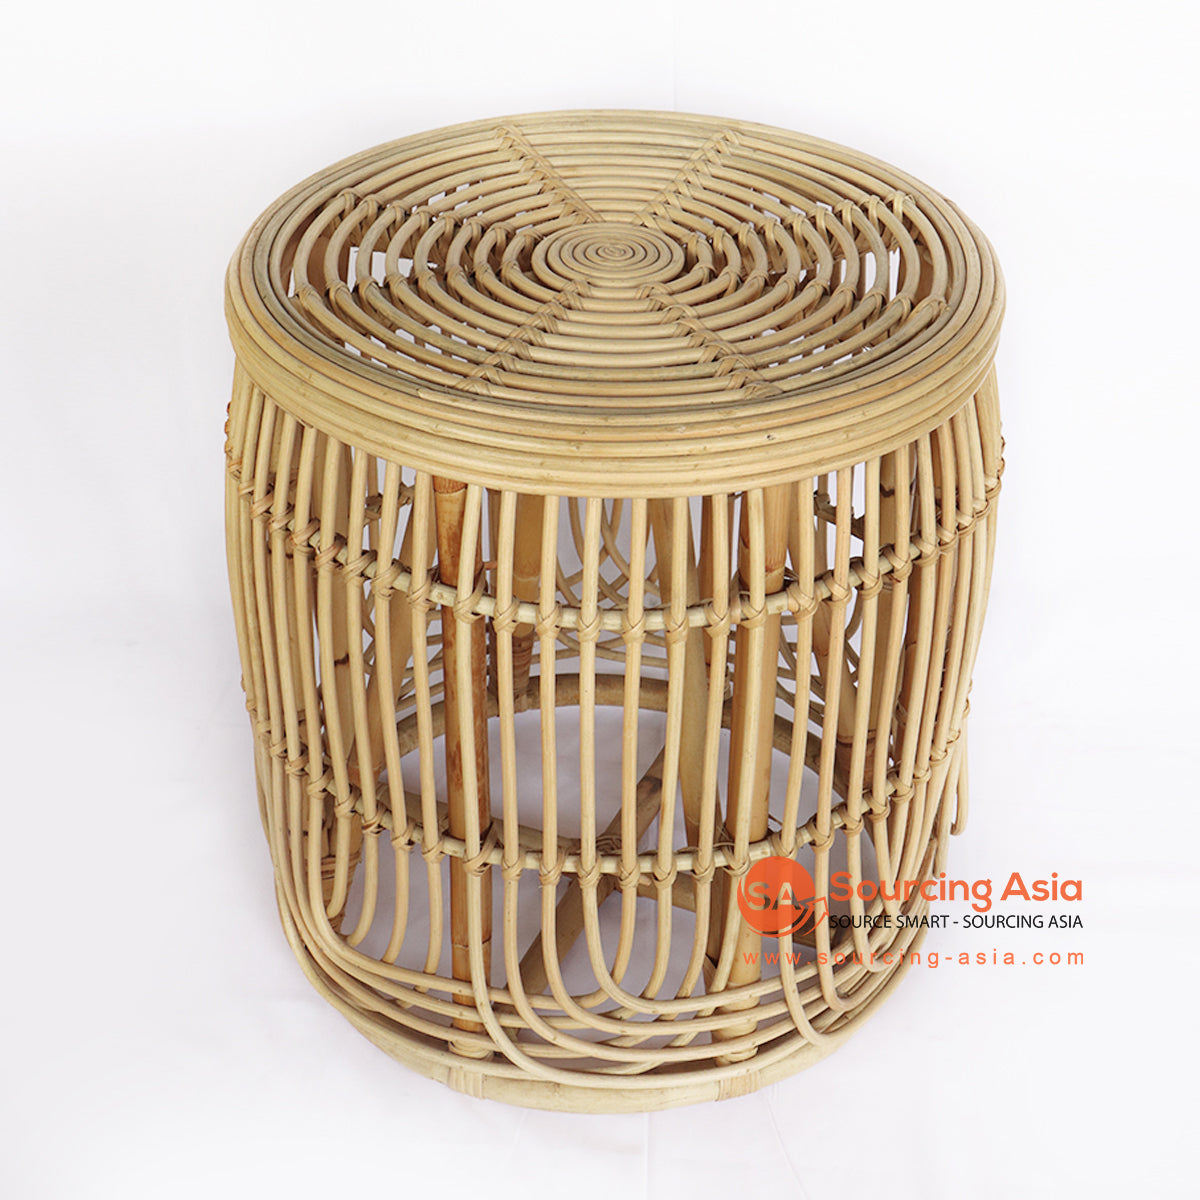 BNTC006-8 ROUND RATTAN GAPED SIDE TABLE